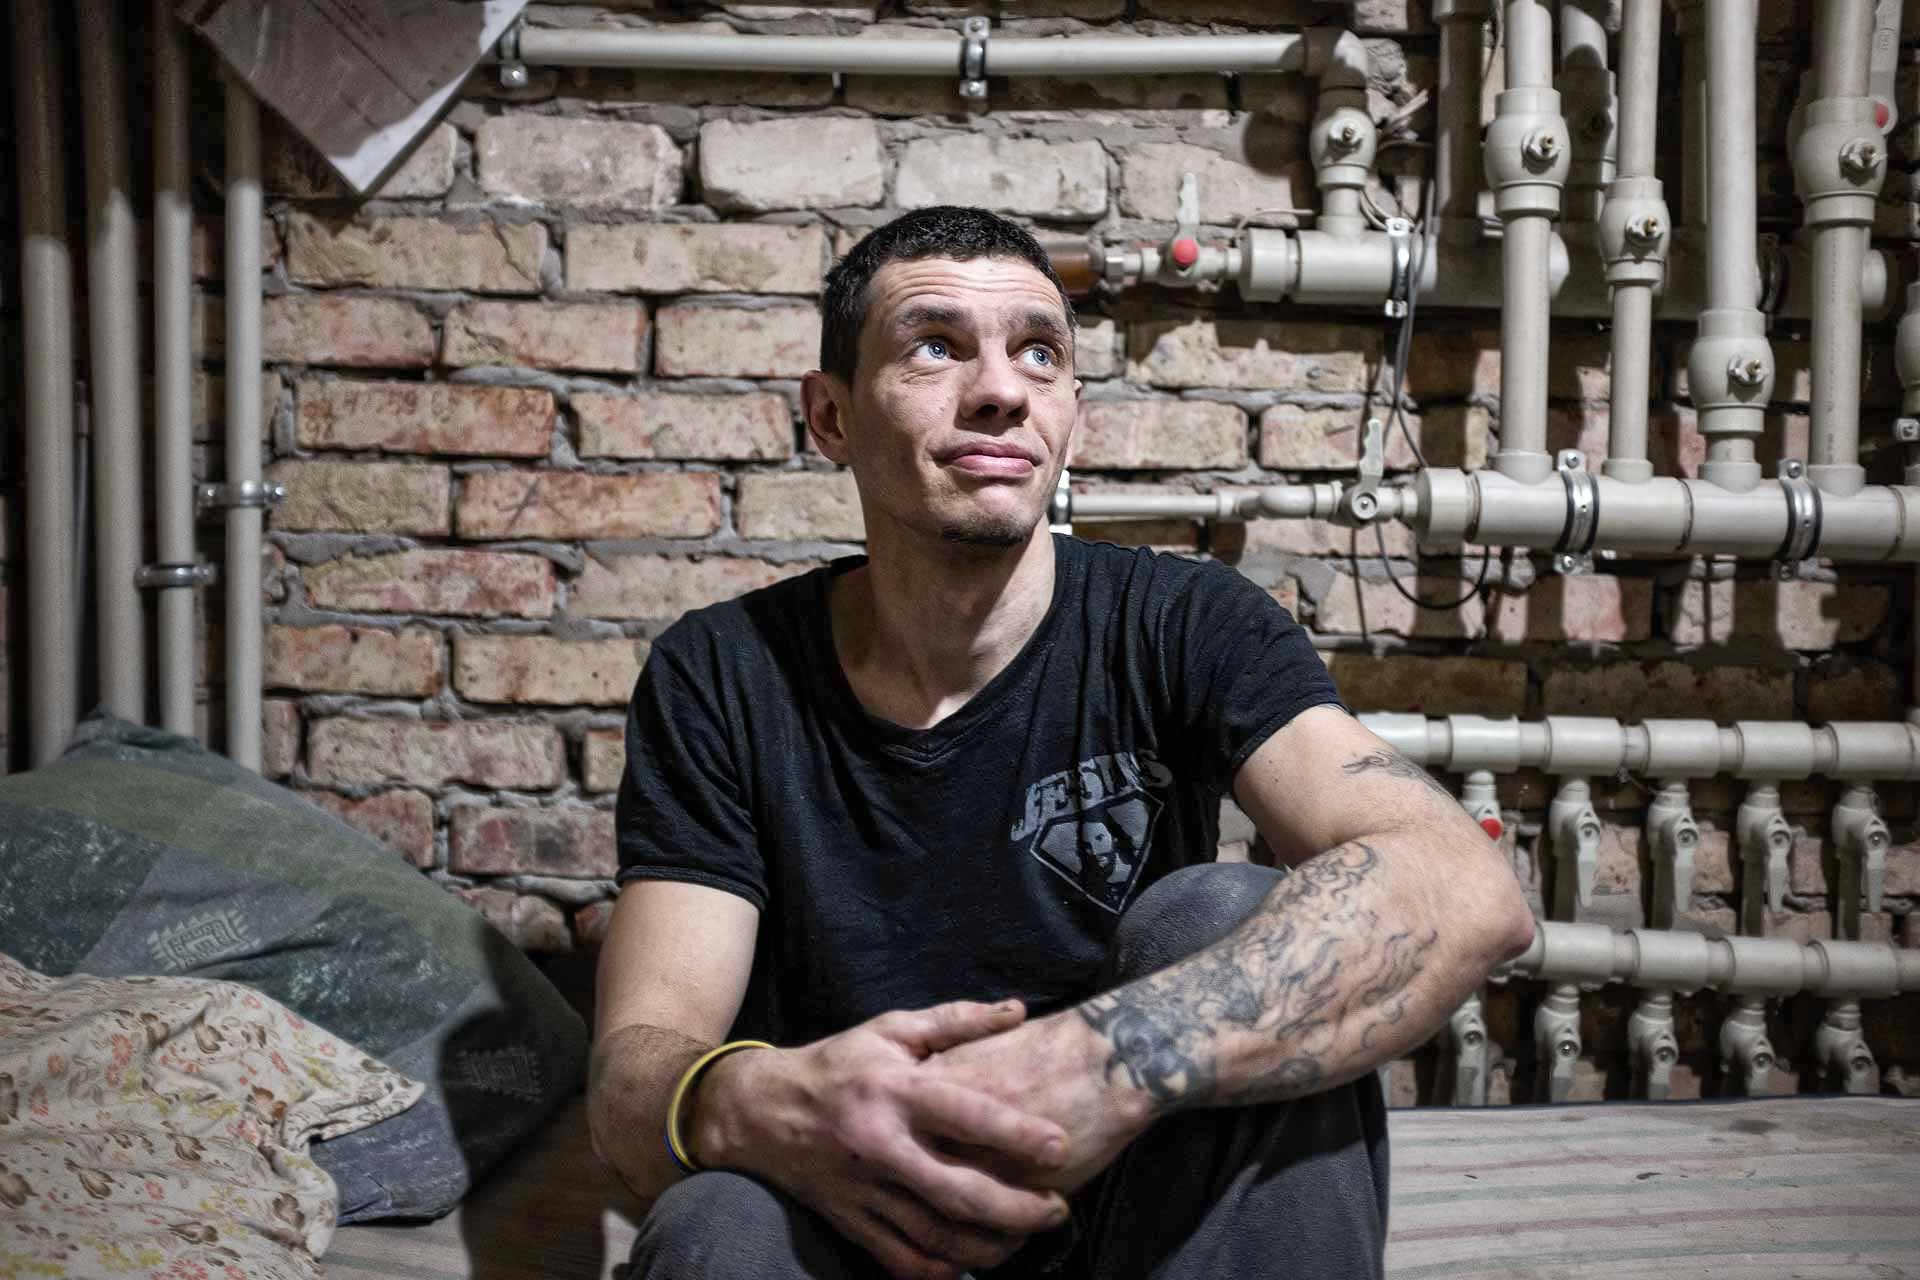 Vlad, 33, is from Slaviansk. During the DNR period, from may to july 2014, he protected the building owned by the Evangelists, from DNR secessionists. He now manages the IDP center created by Evangelist church of Slaviansk, from the first arrivals of IDP, in last October. 45 of them now live there. Slaviansk - UKRAINE